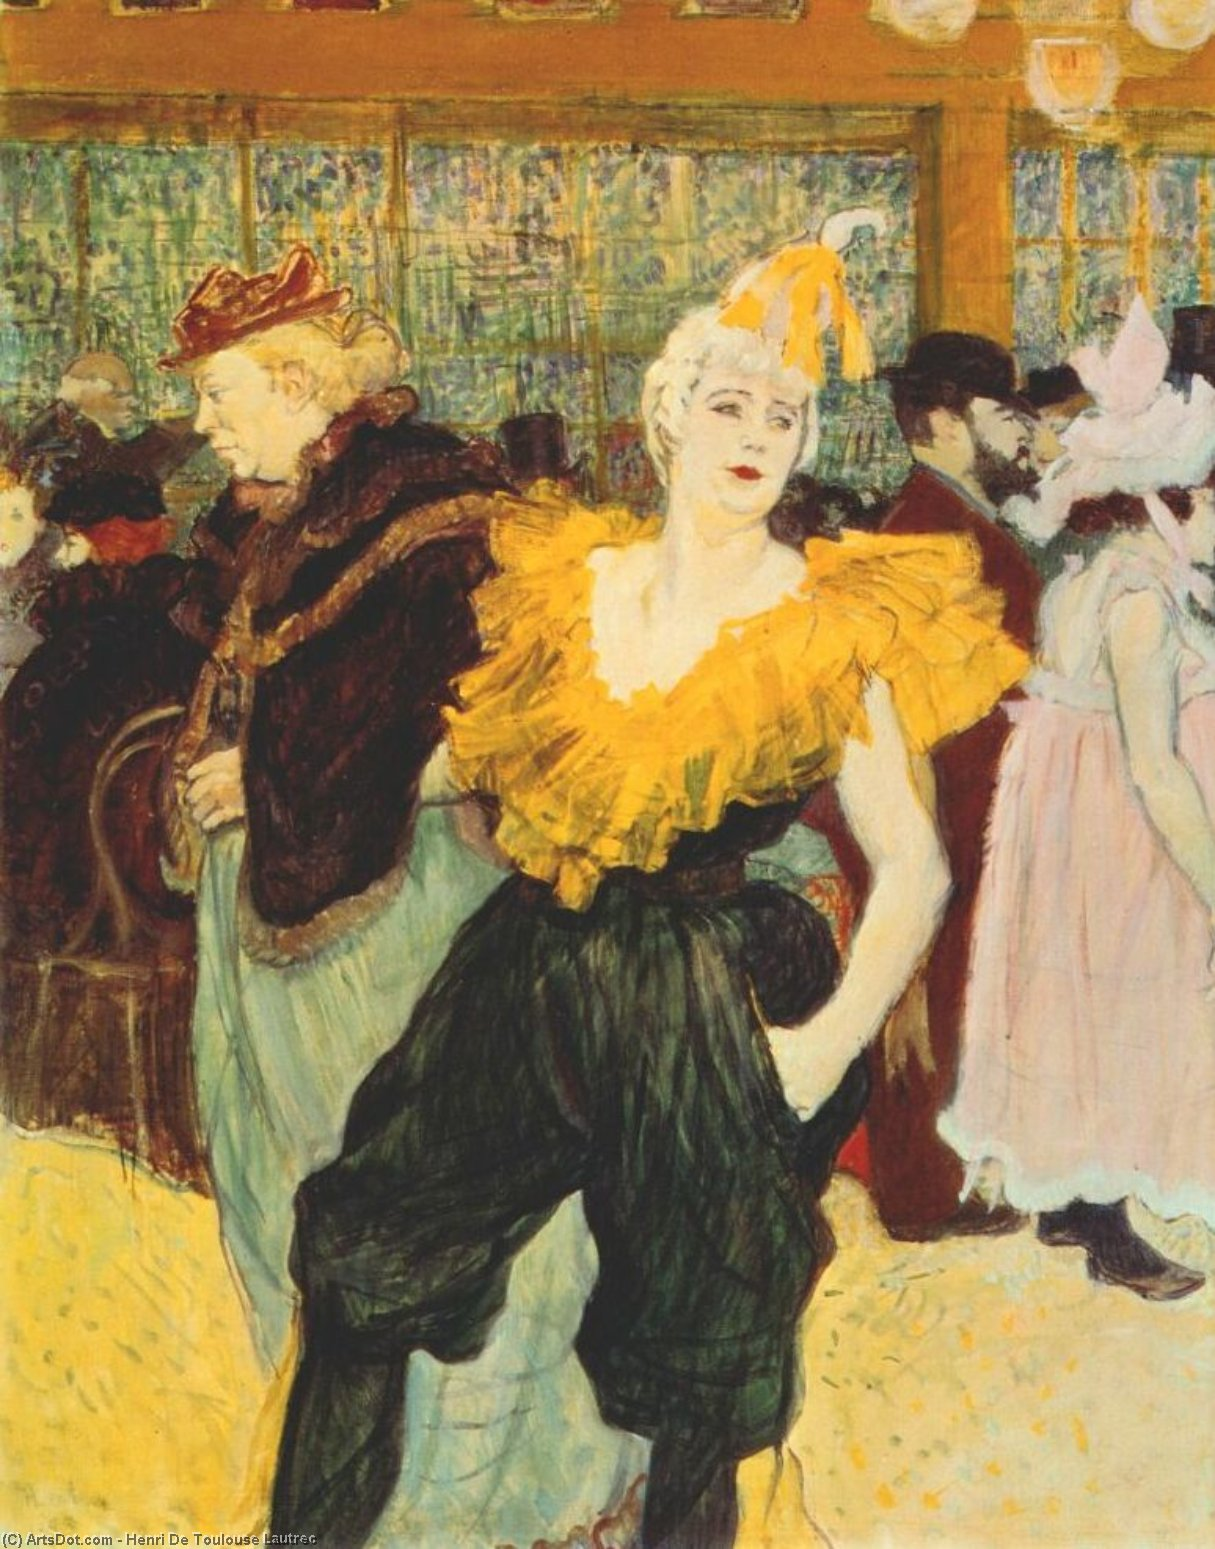 the clownesse cha-u-kao at the moulin rouge, 1895 by Henri De Toulouse Lautrec (1864-1901, France) | ArtsDot.com